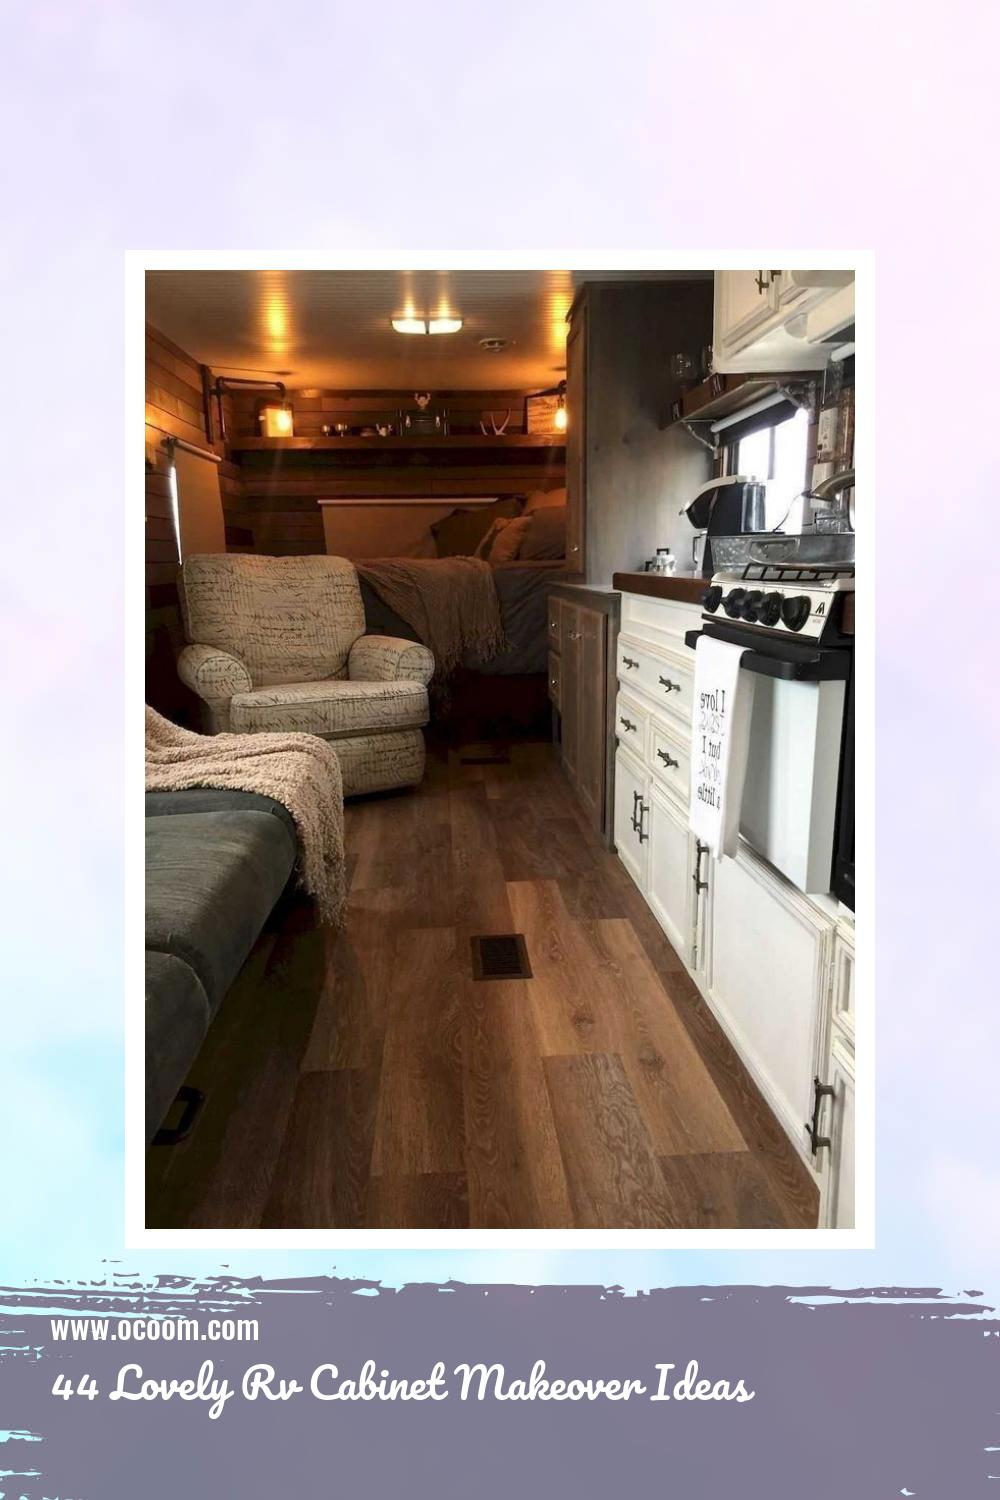 44 Lovely Rv Cabinet Makeover Ideas 35